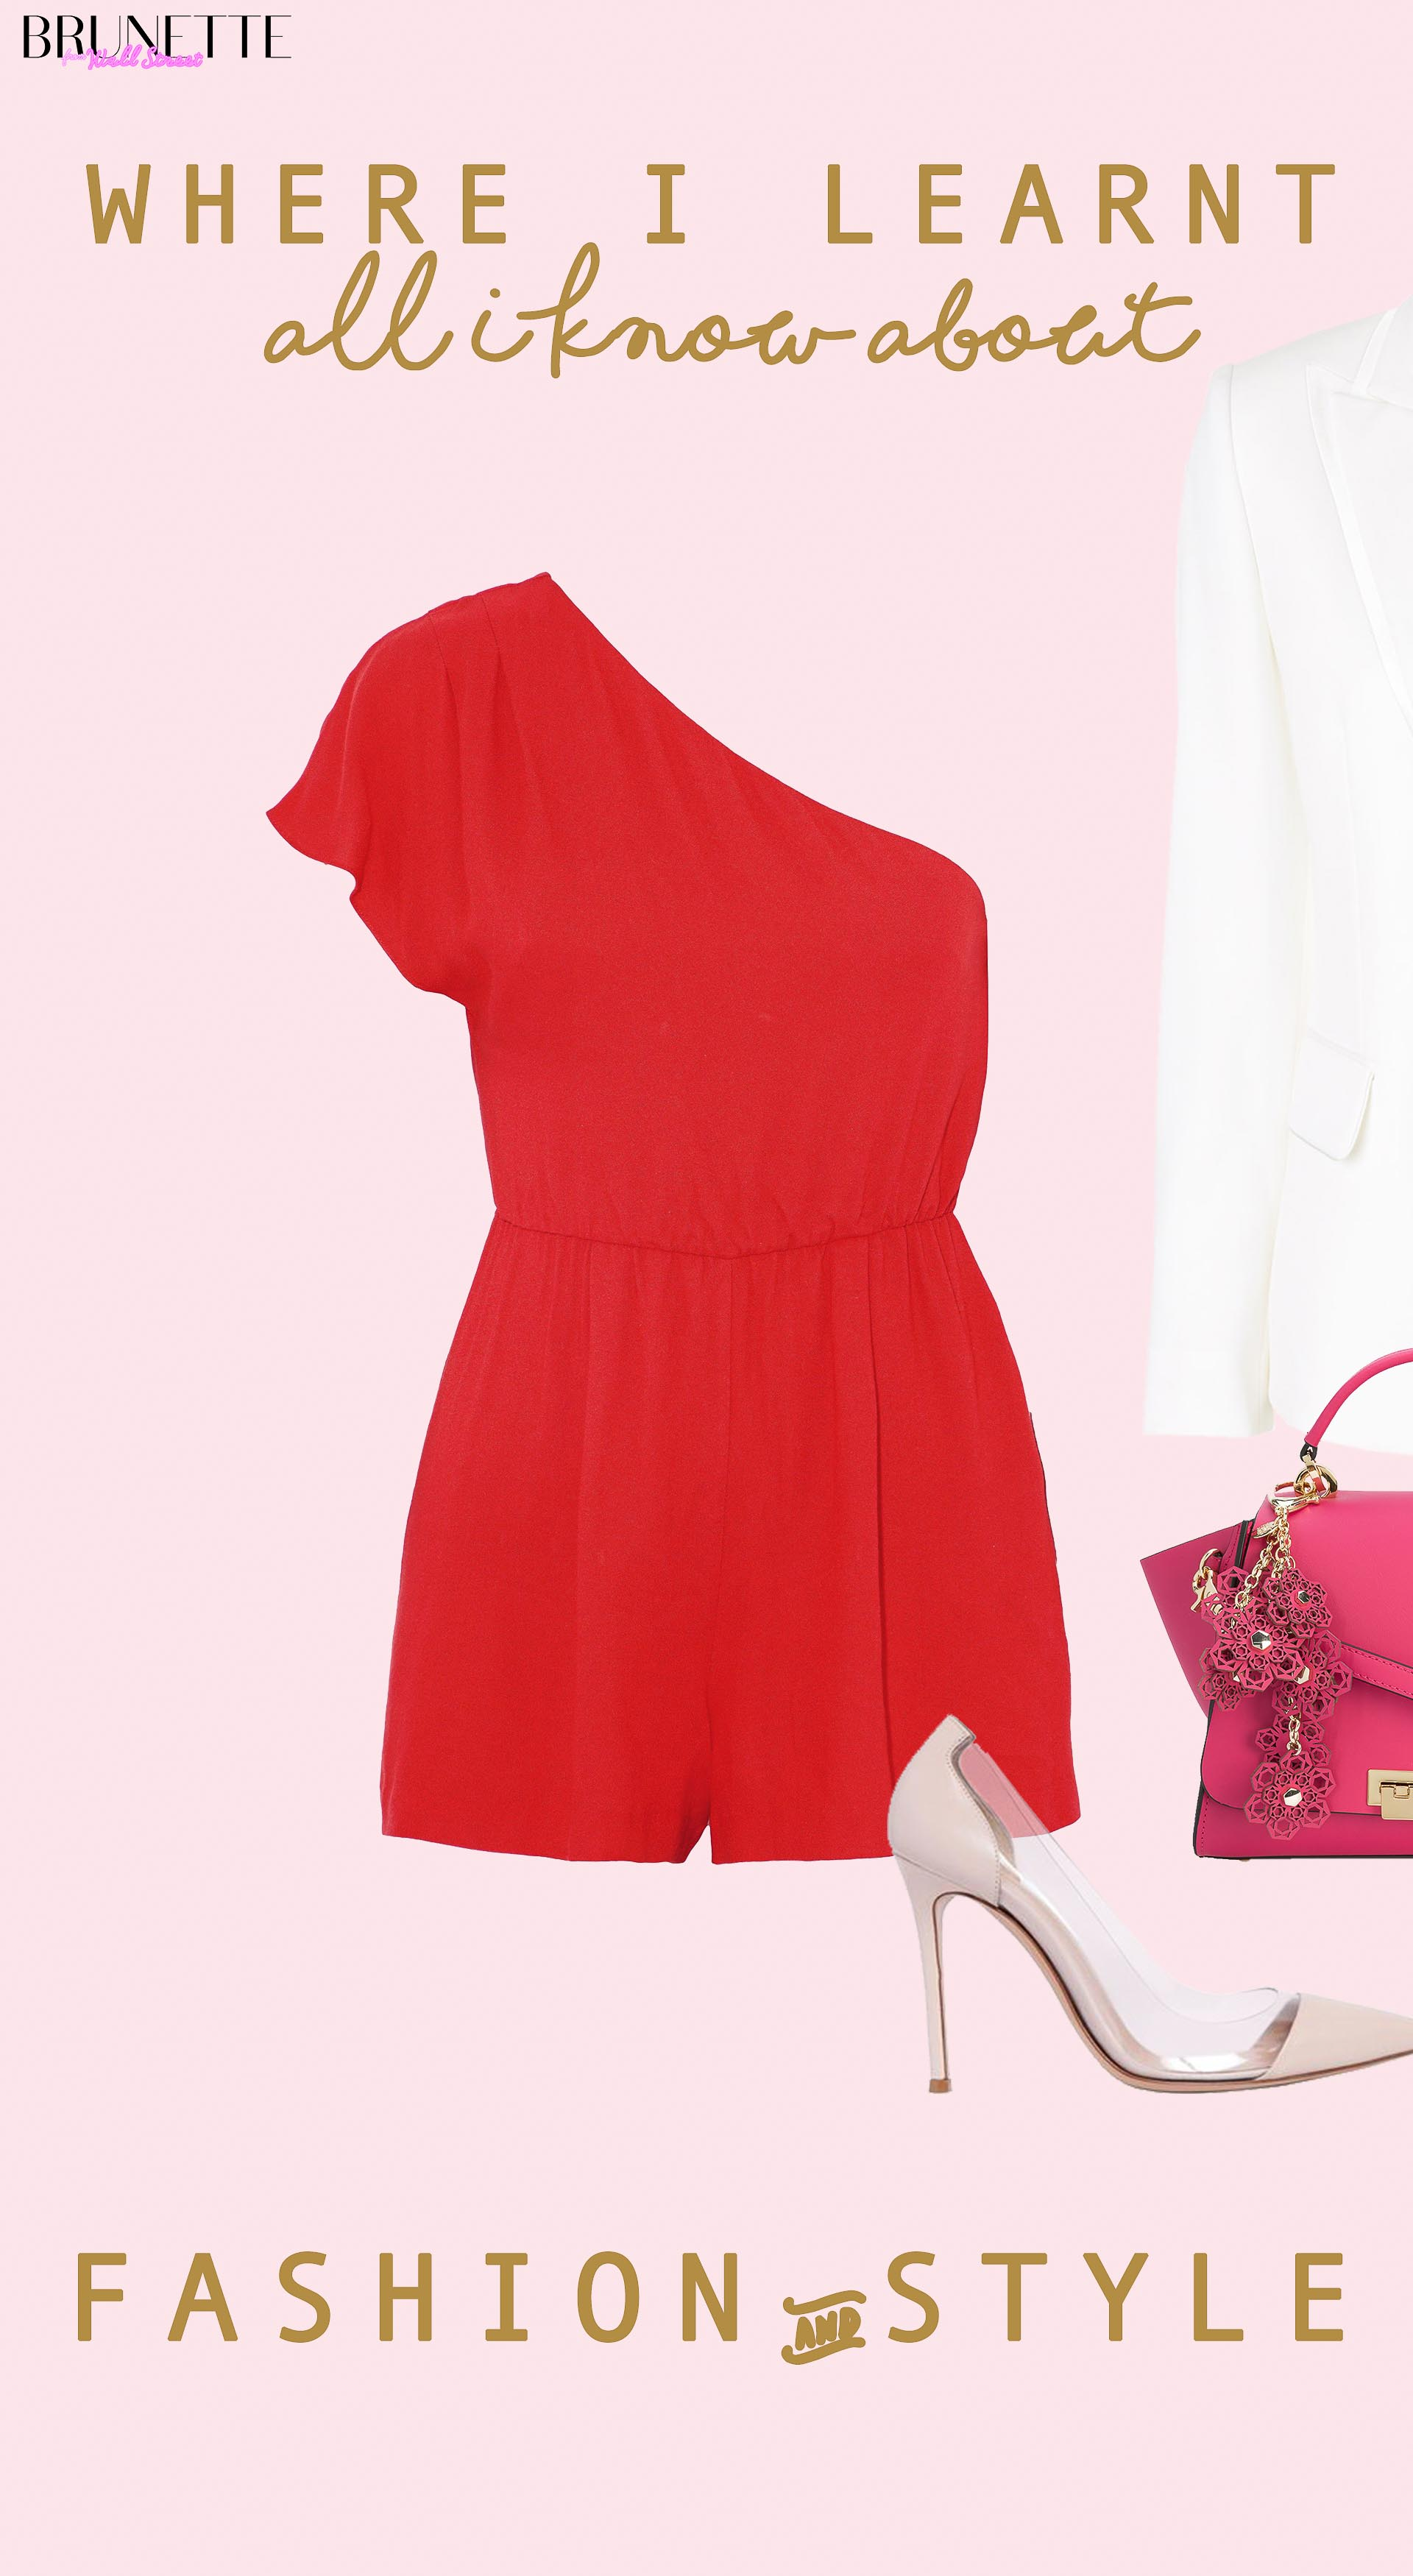 one side shoulder red romper, zac zac posen pink tote top handle bag, gianvito rossi pumps with text overlay where I learnt all I know about fashion and style